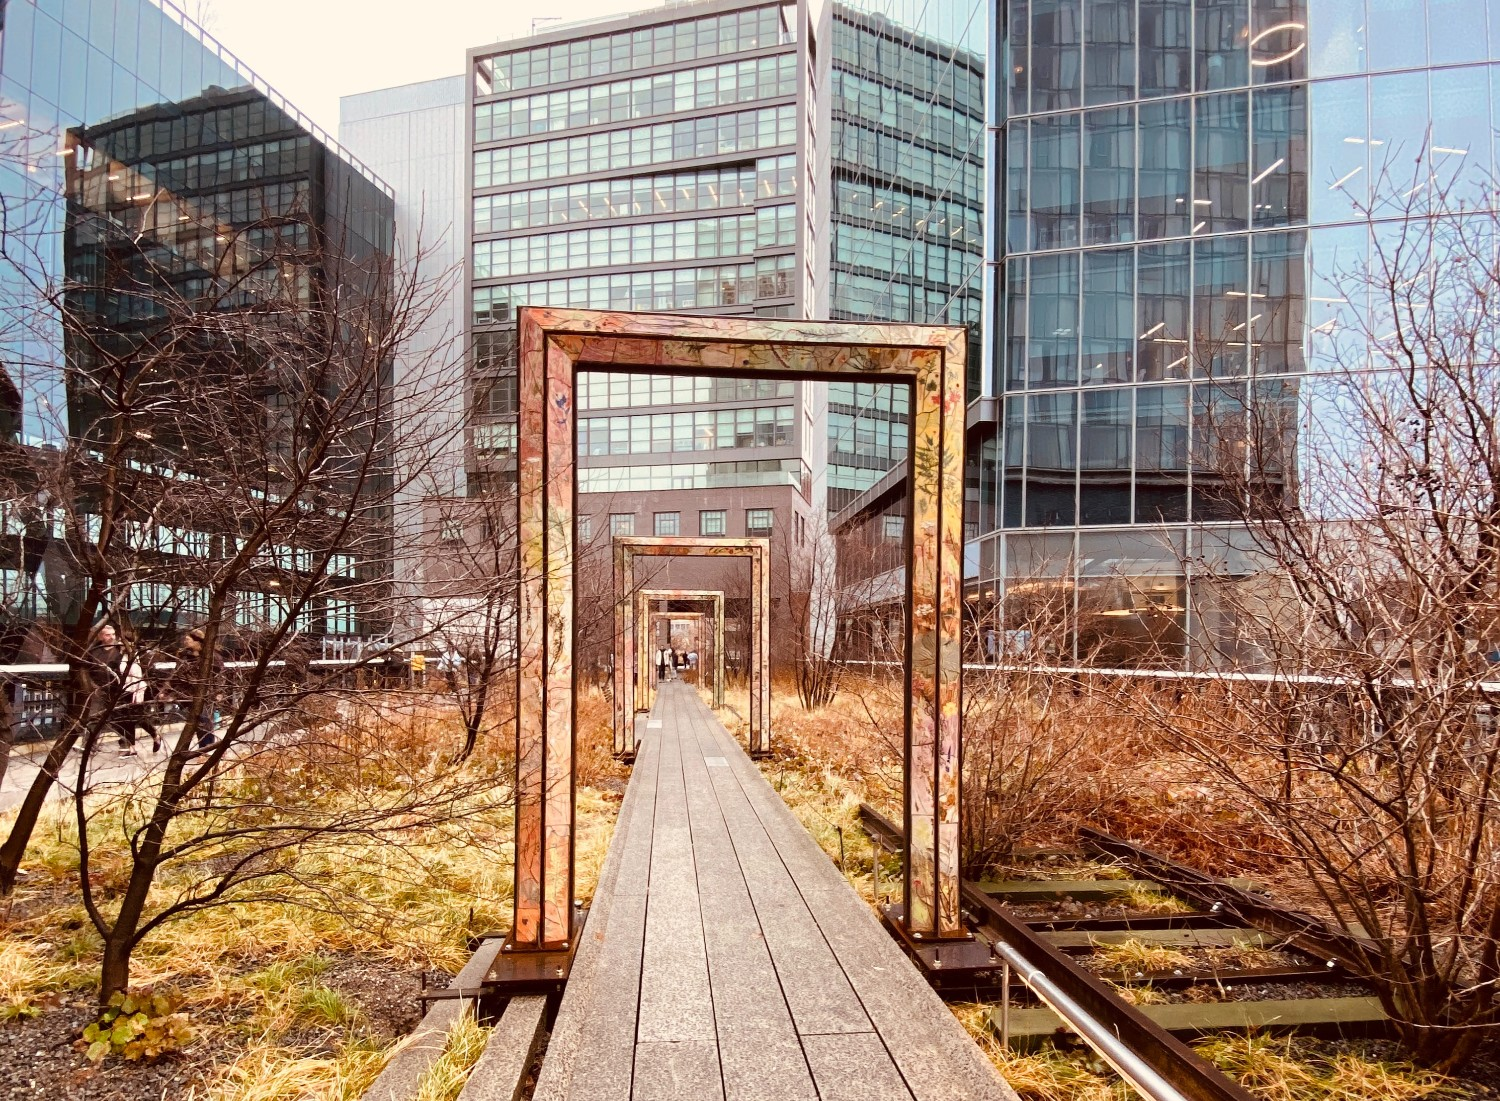 A view down the High Line park in NYC